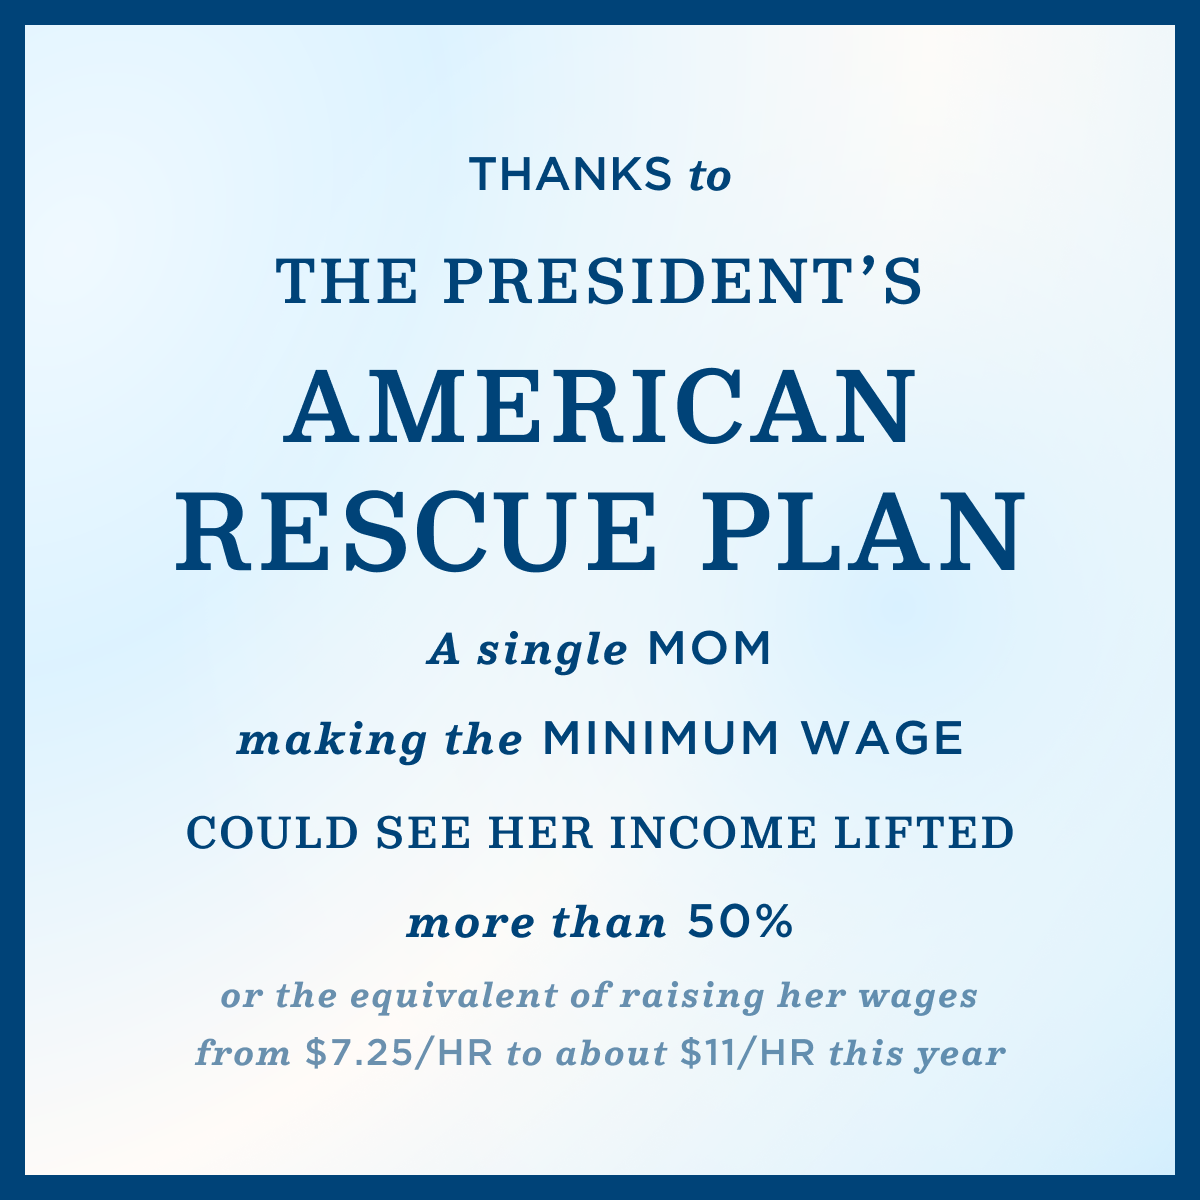 """A light blue image that reads """"Thanks to the President's American Rescue Plan... A single mom making the minimum wage could see her income lifted by more than 50% or the equivalent of raising her wages from $7.25/hr to about $11/hr this year"""""""